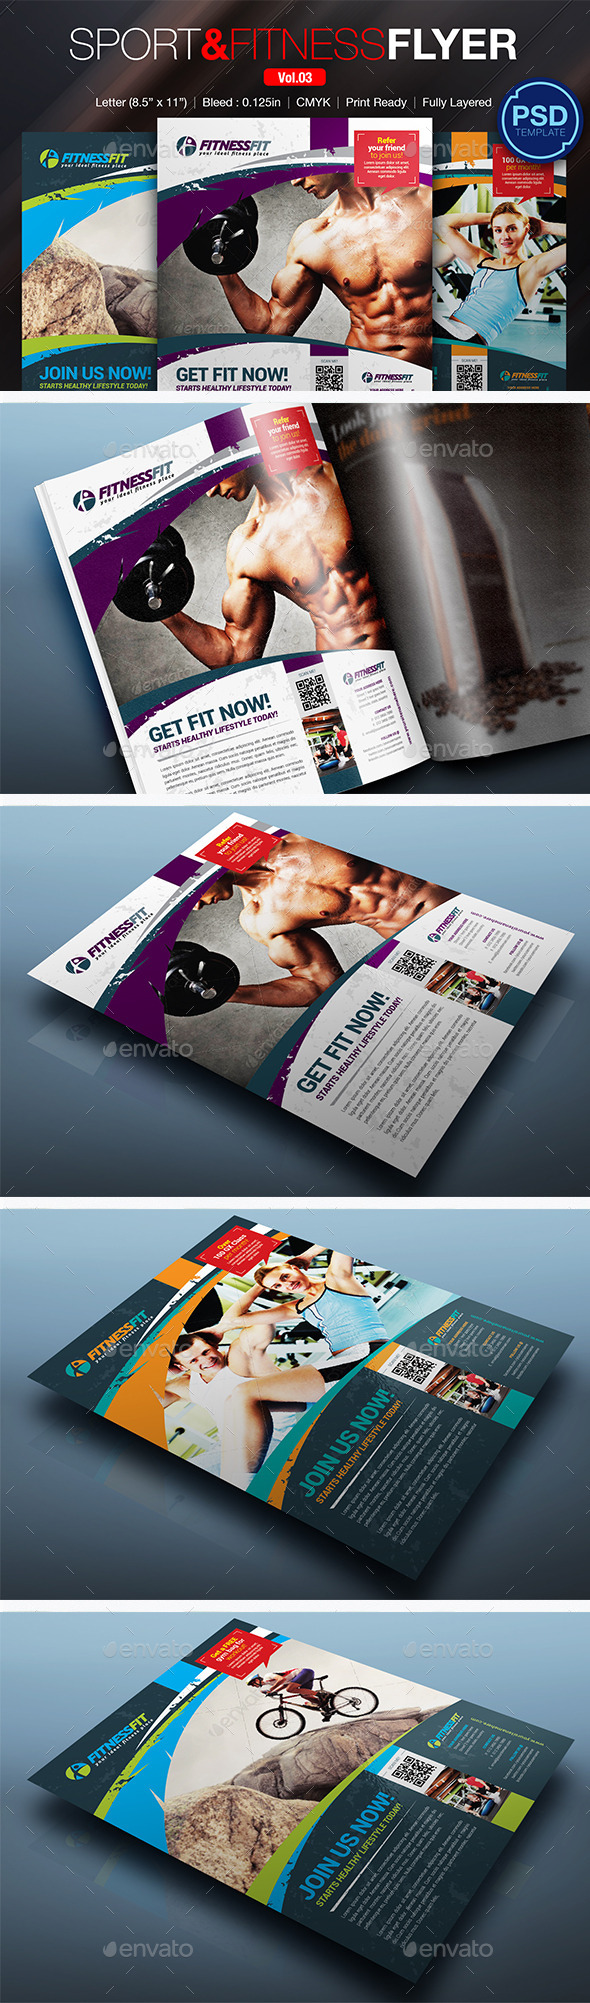 GraphicRiver Sport & Fitness Flyer Vol.03 10290209